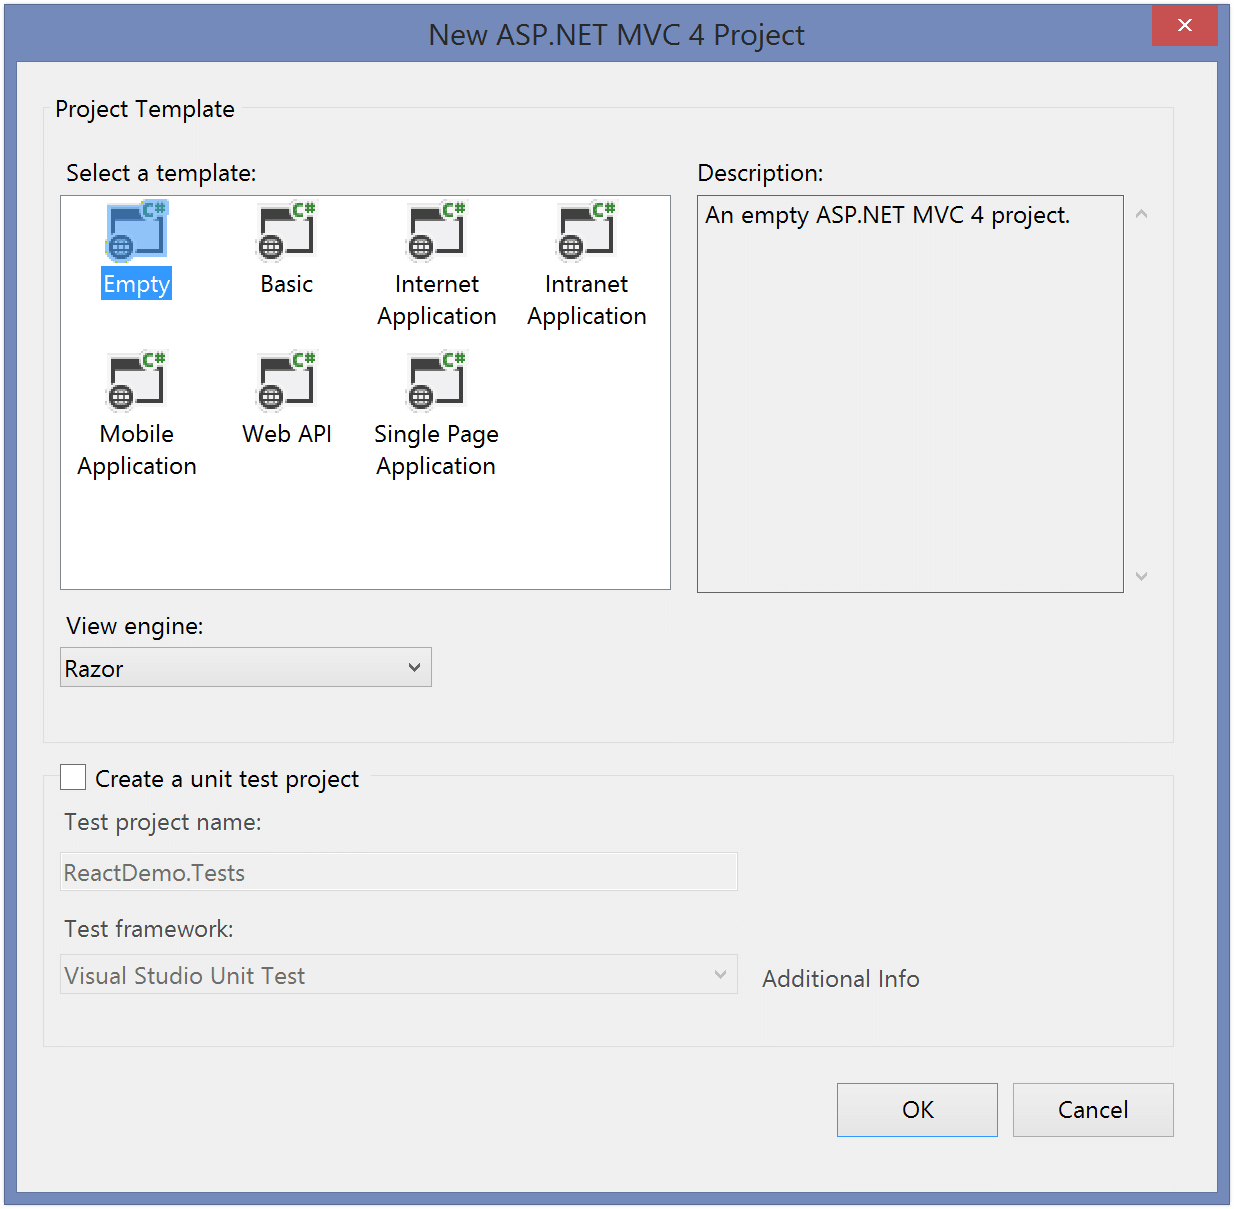 Screenshot: New ASP.NET MVC 4 Project dialog